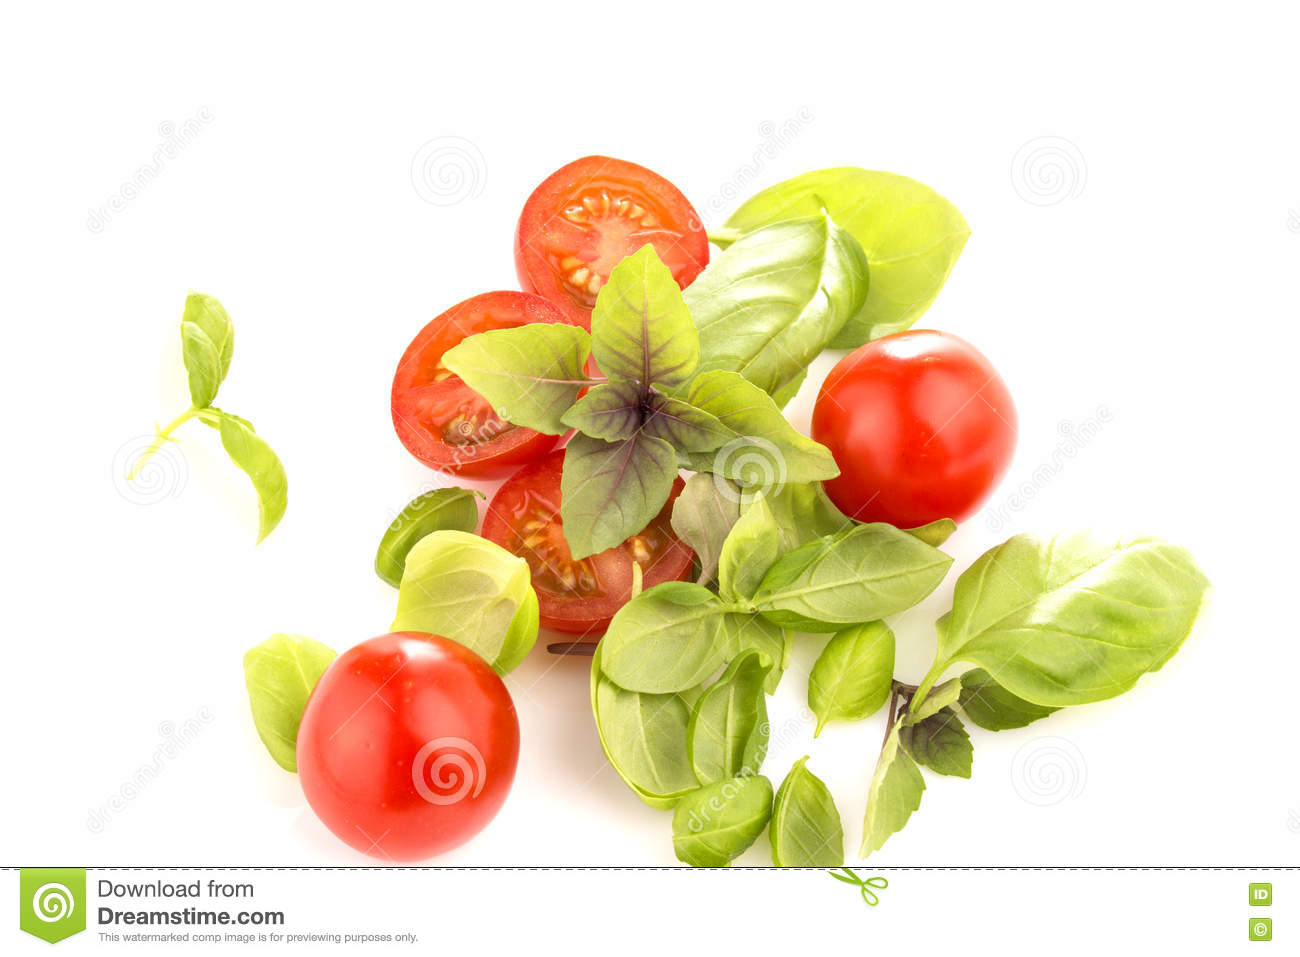 Tomatoes with basil on white background